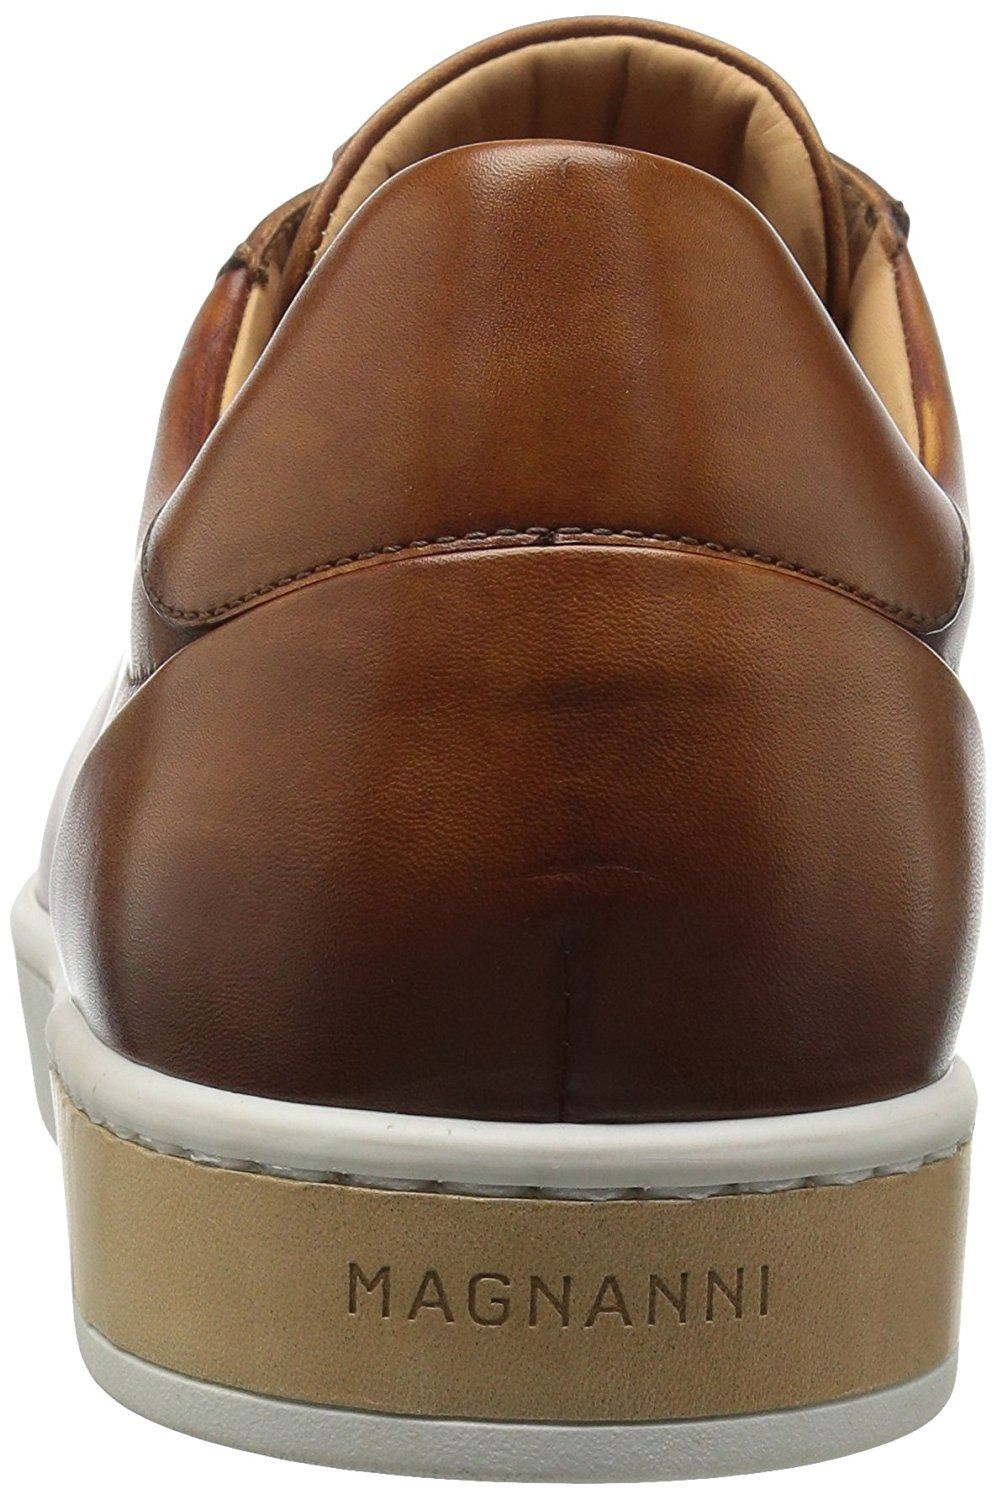 Sneakers fashion, Magnanni, Desert boots